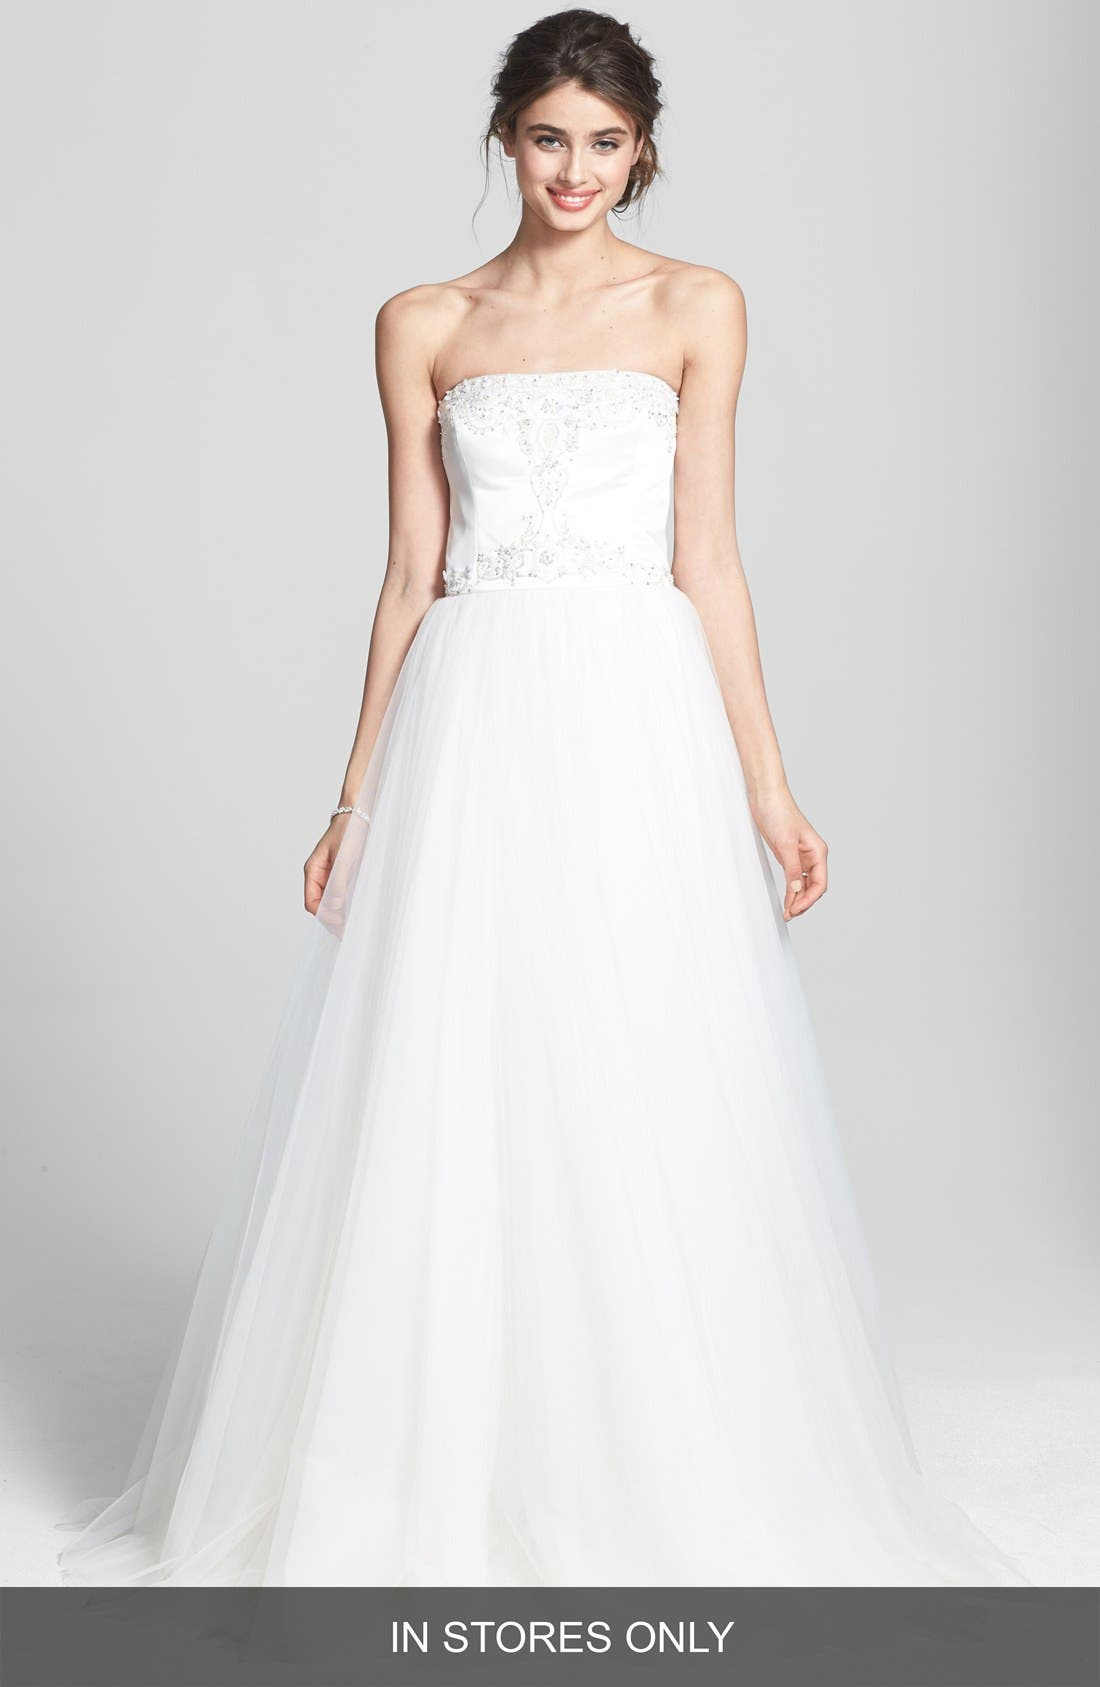 Main Image - Roses by Reem Acra 'Calla' Embroidered Satin & Tulle Dress (In Stores Only)